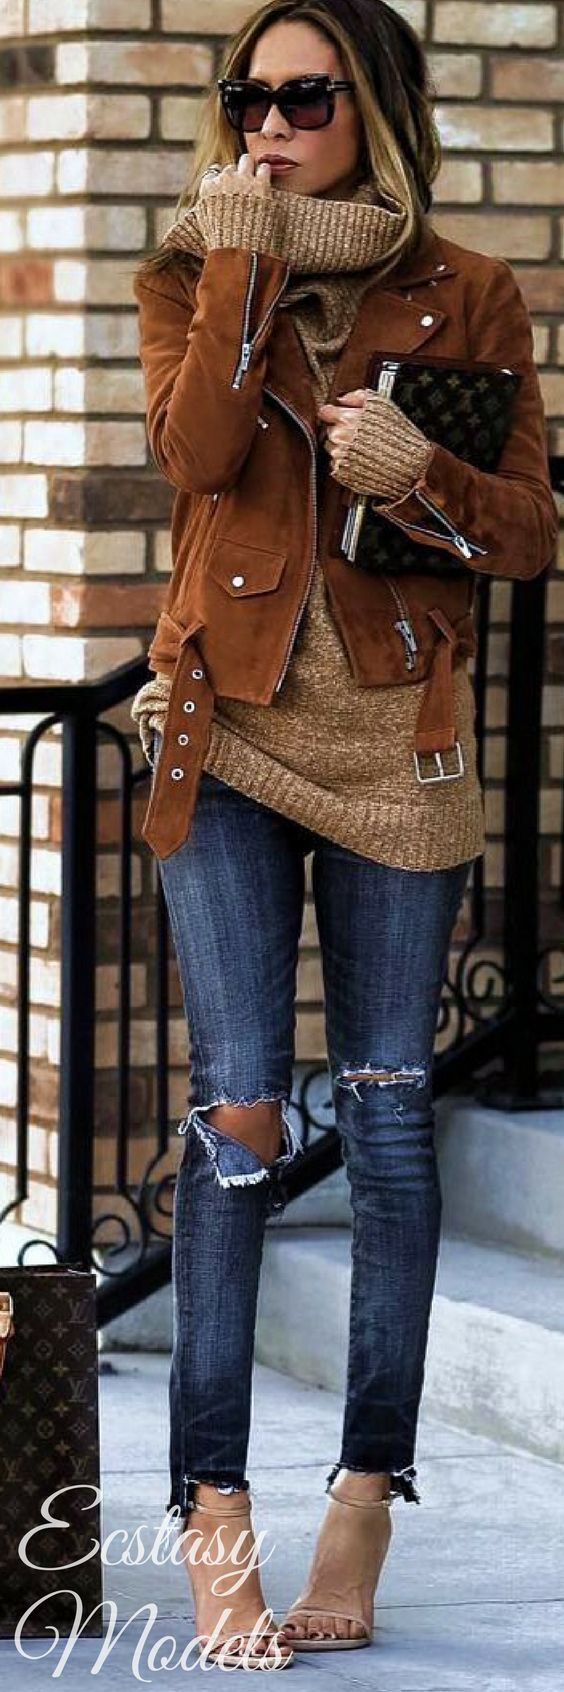 Fall ColorsVEDA jayne suede jacket, Asos cowl neck sweater, Frame skinny jeans, Stuart Weitzman sandals Fashion look by Sasha Simon